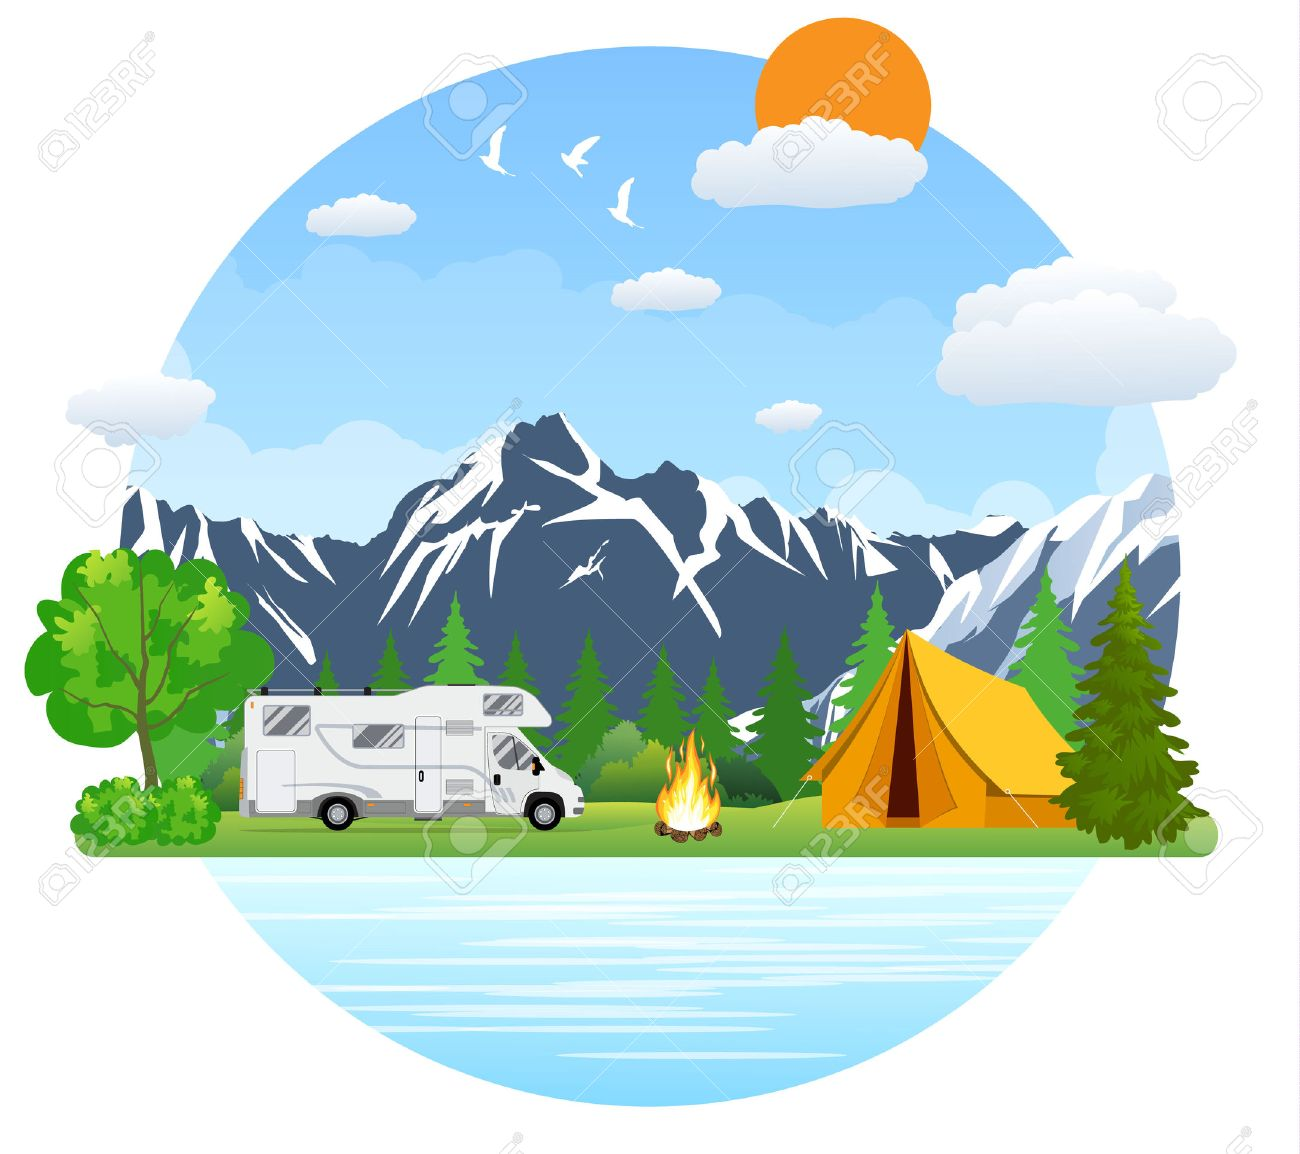 Campsite place in mountain lake. Forest camping landscape with...